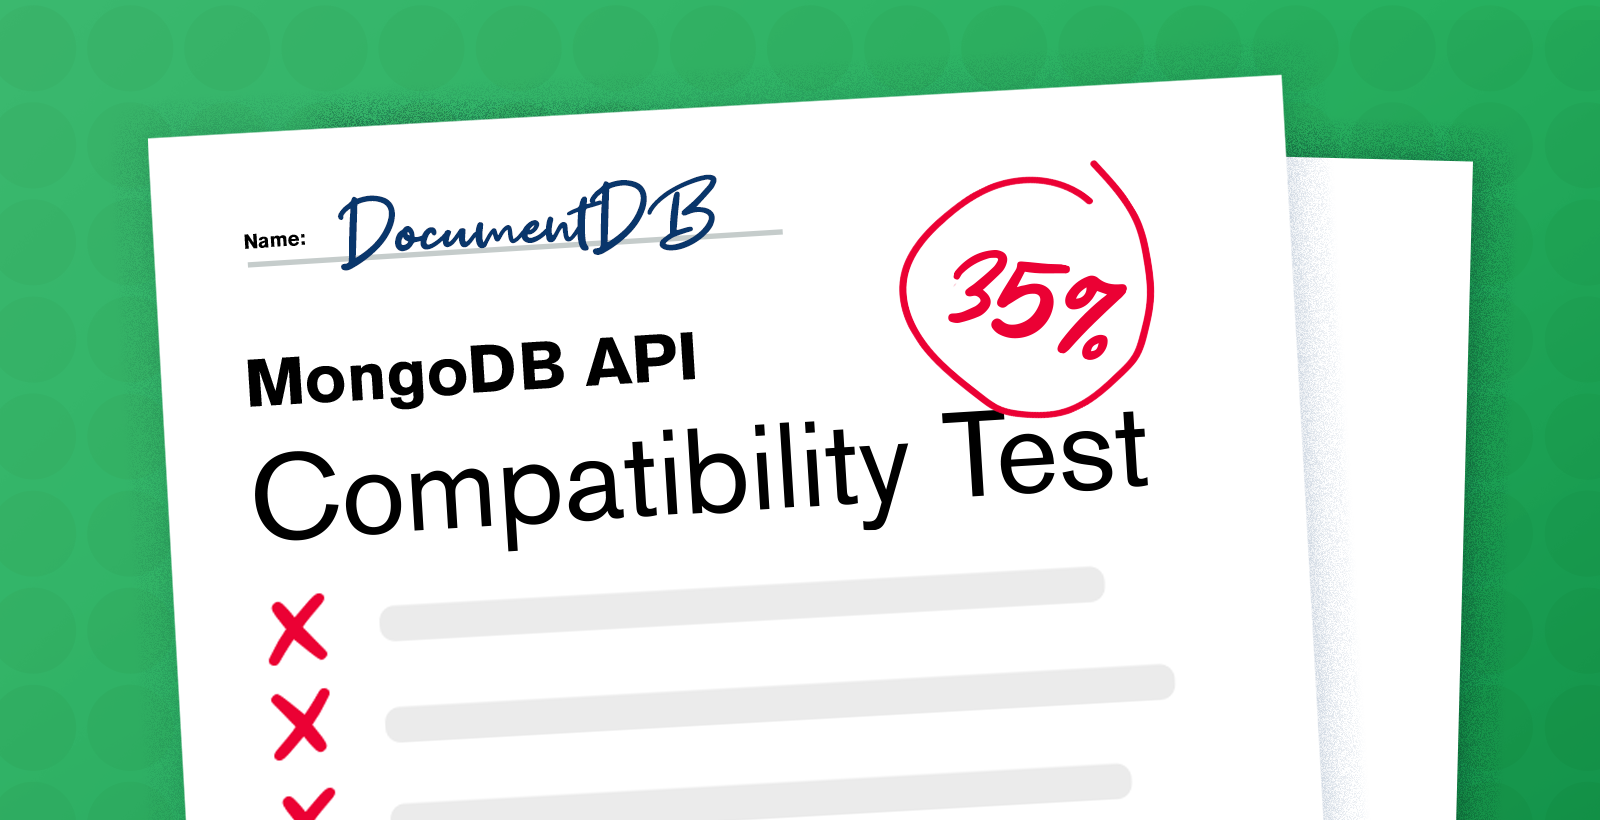 Compatibility Report Card